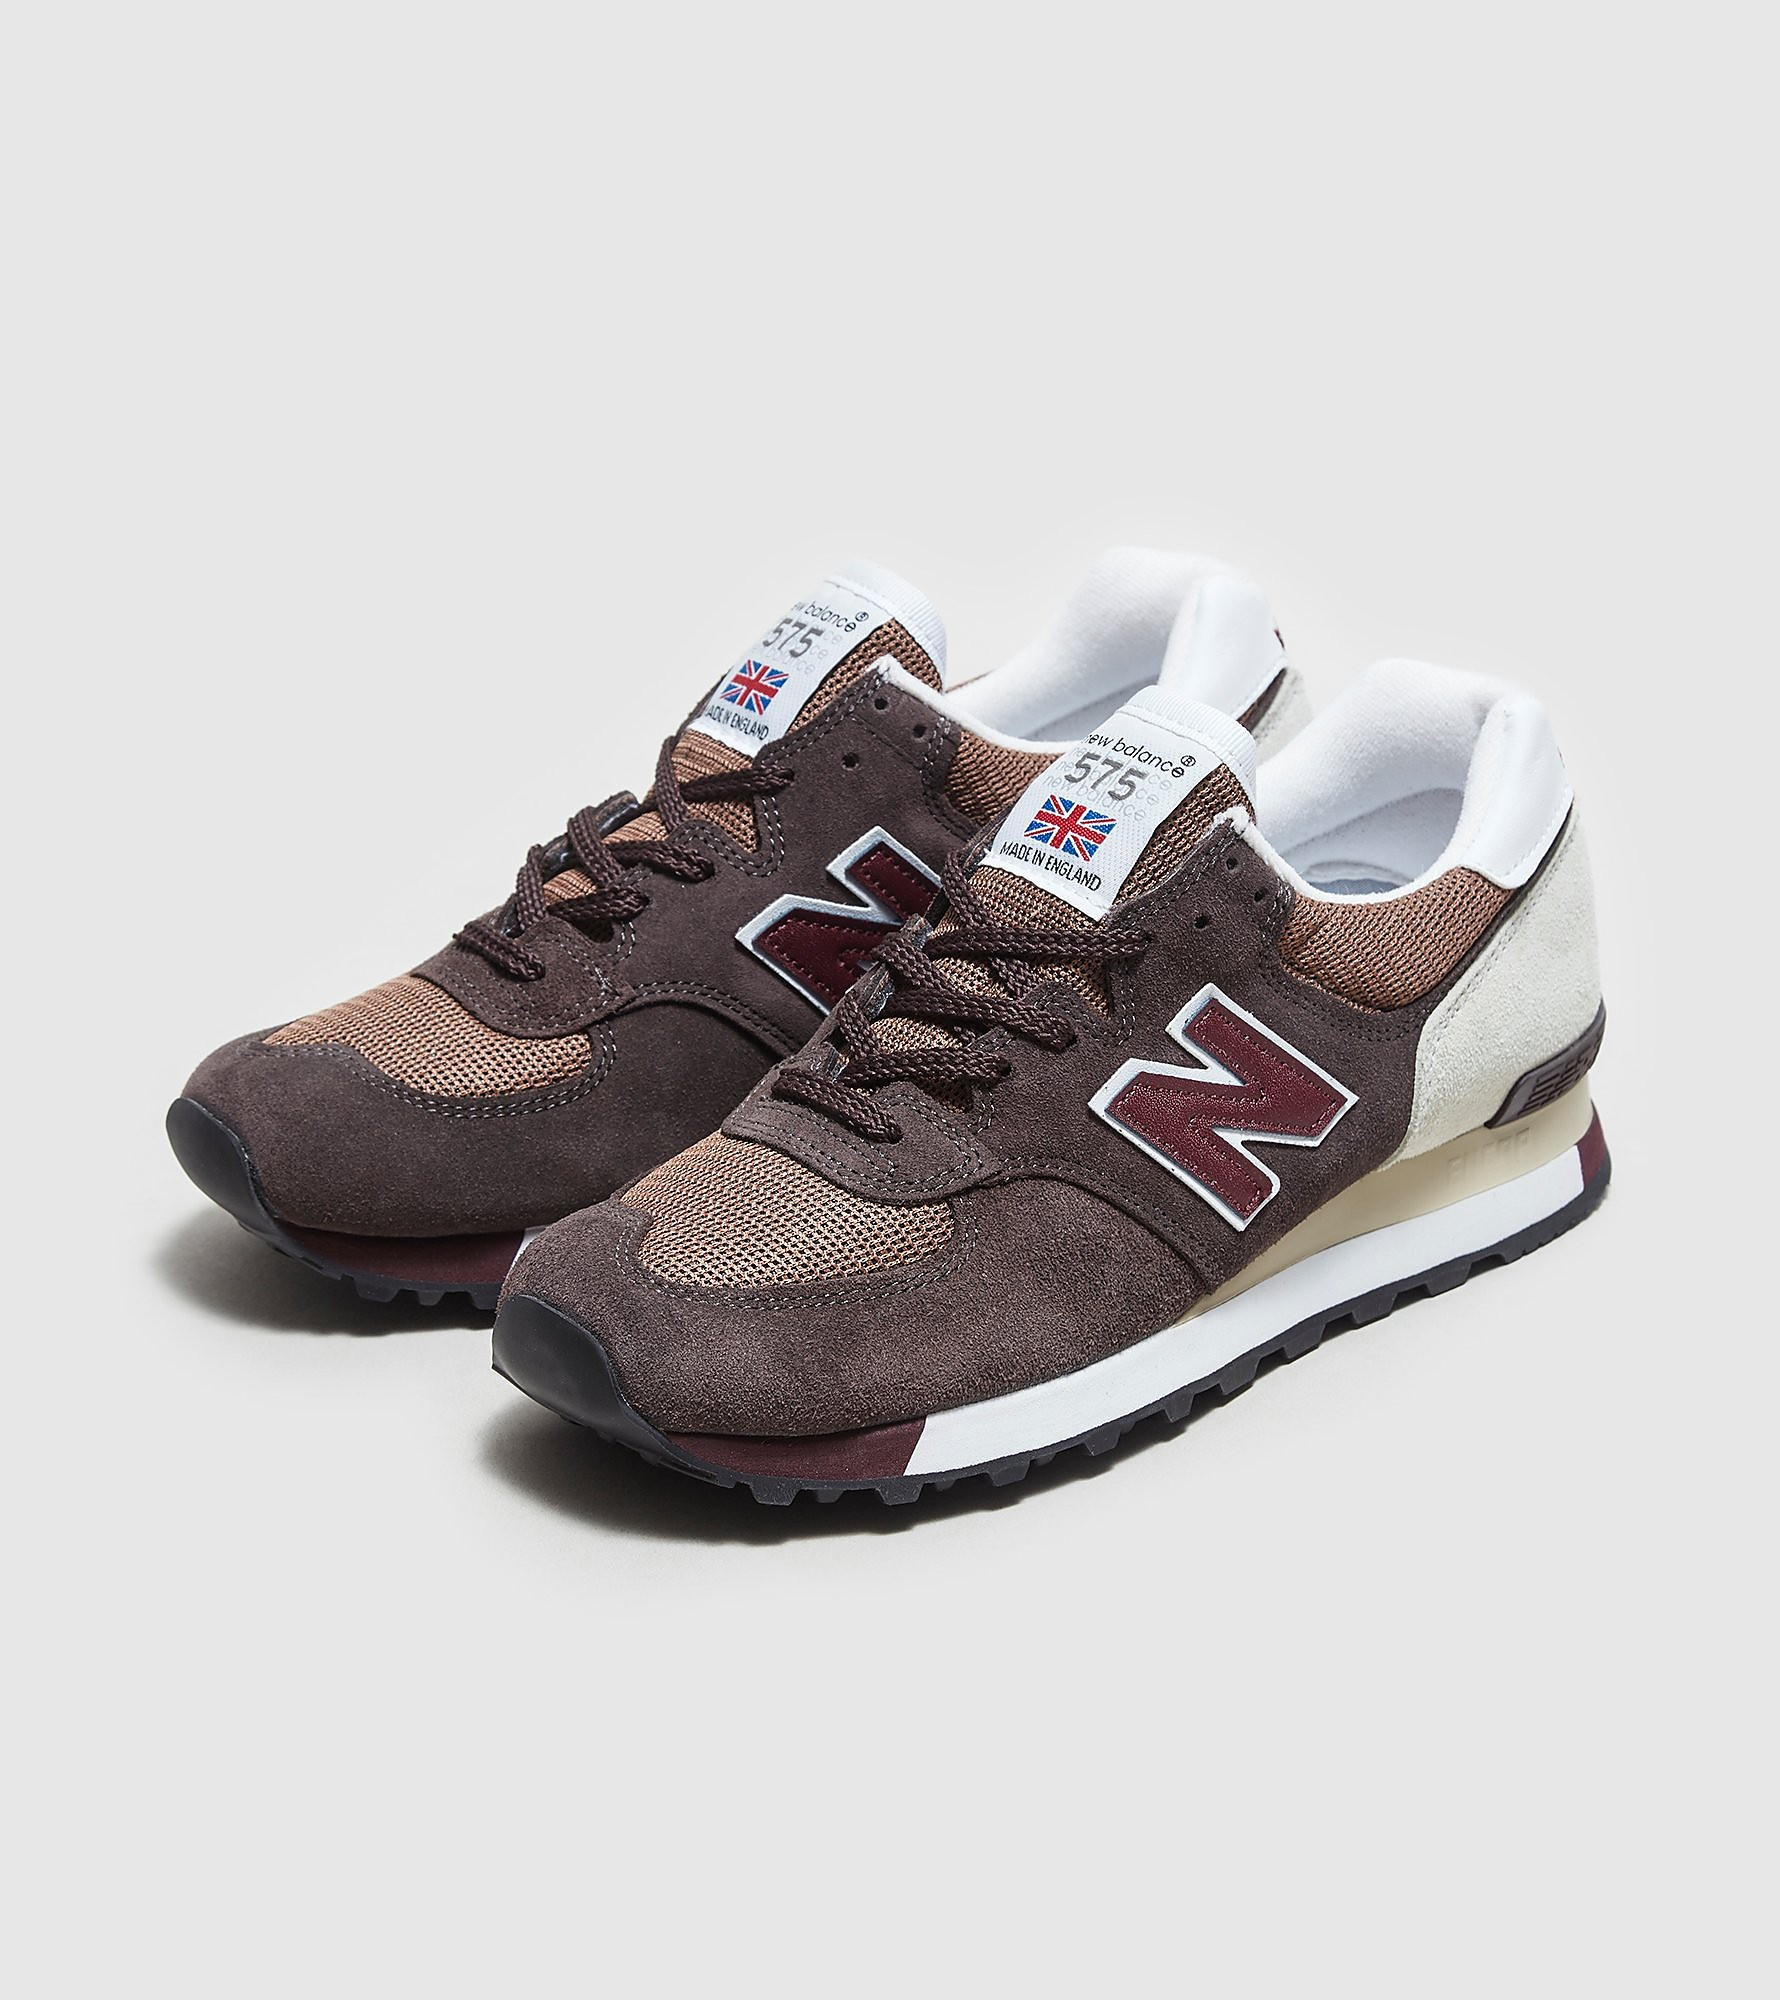 New Balance 575 Suede 'Made in UK'